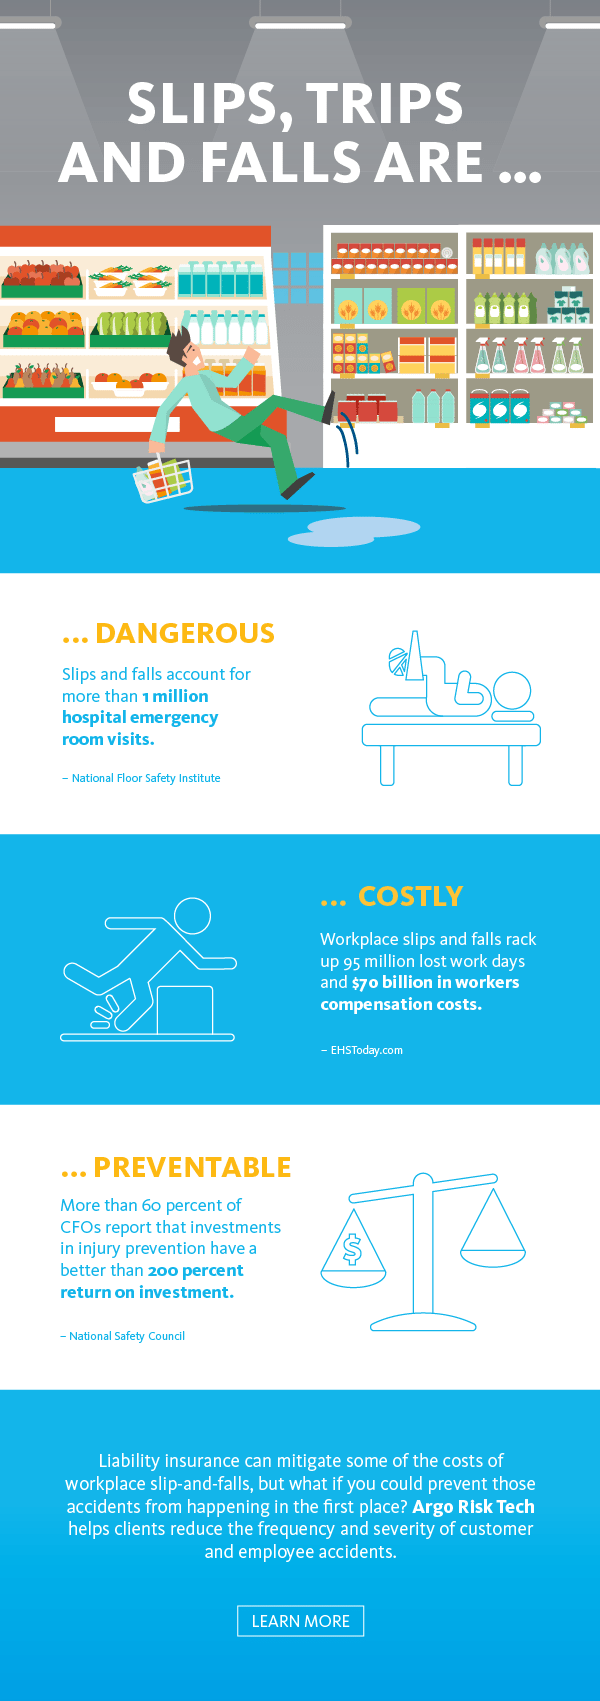 Infographic featuring tips and stats on workplace slips, trips, and falls